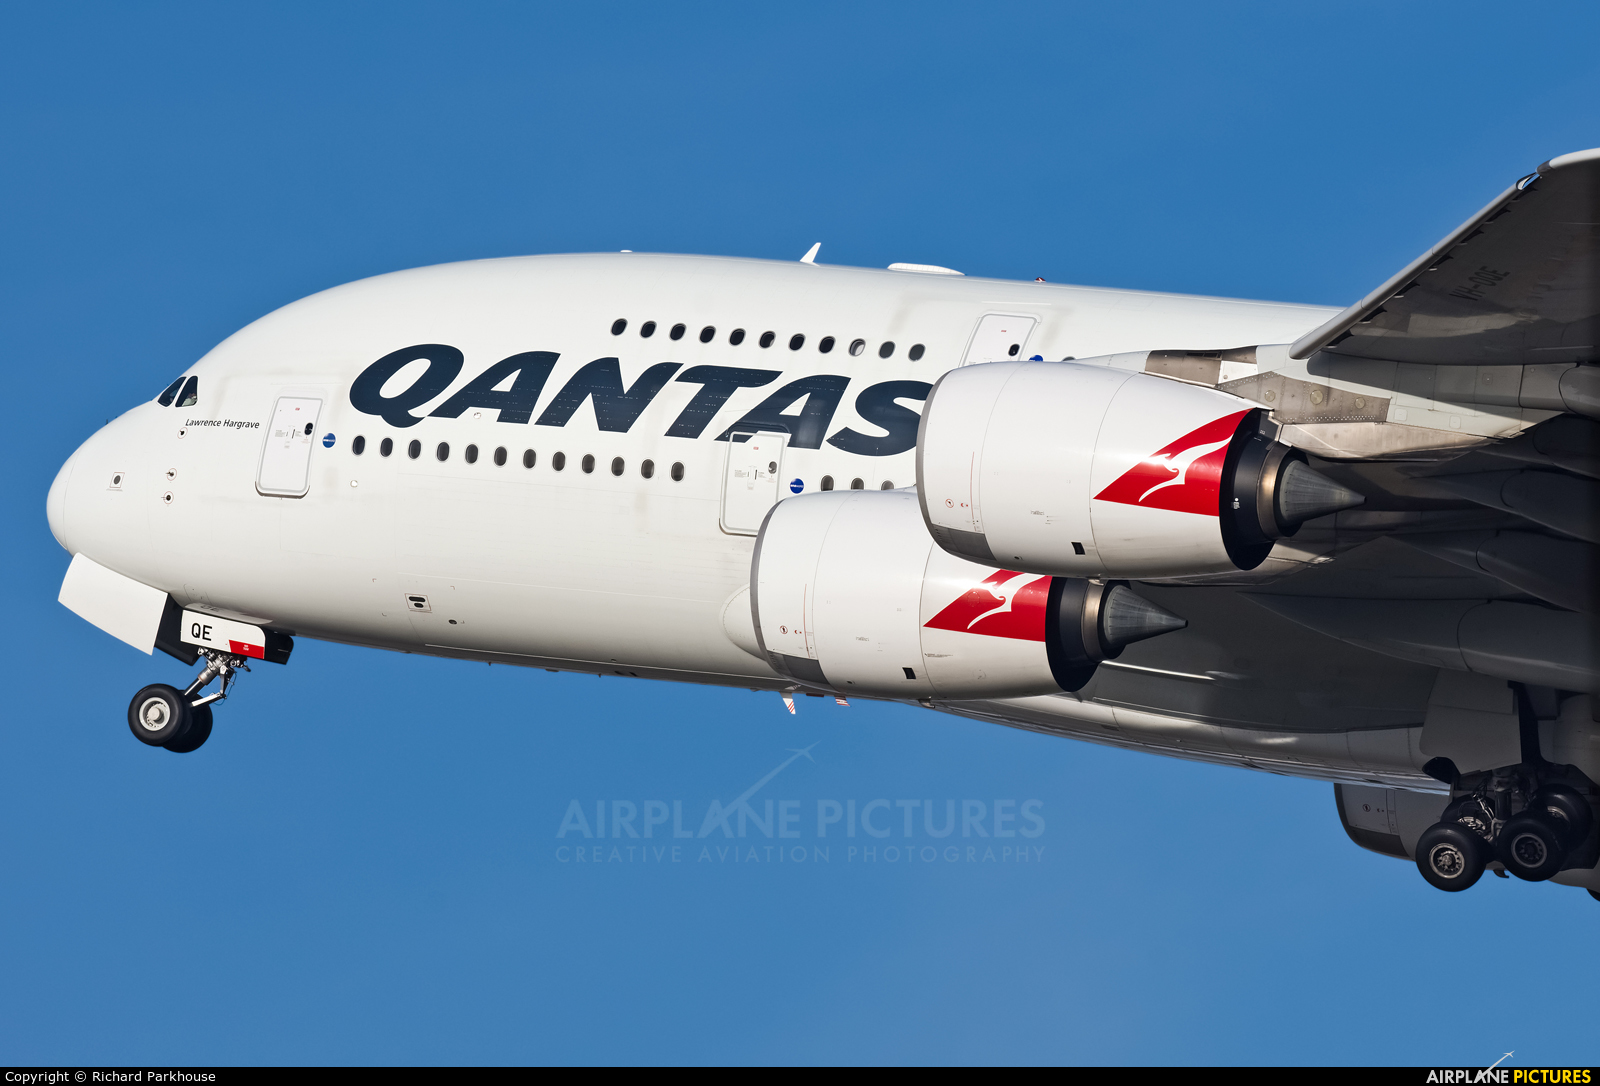 QANTAS VH-OQE aircraft at London - Heathrow